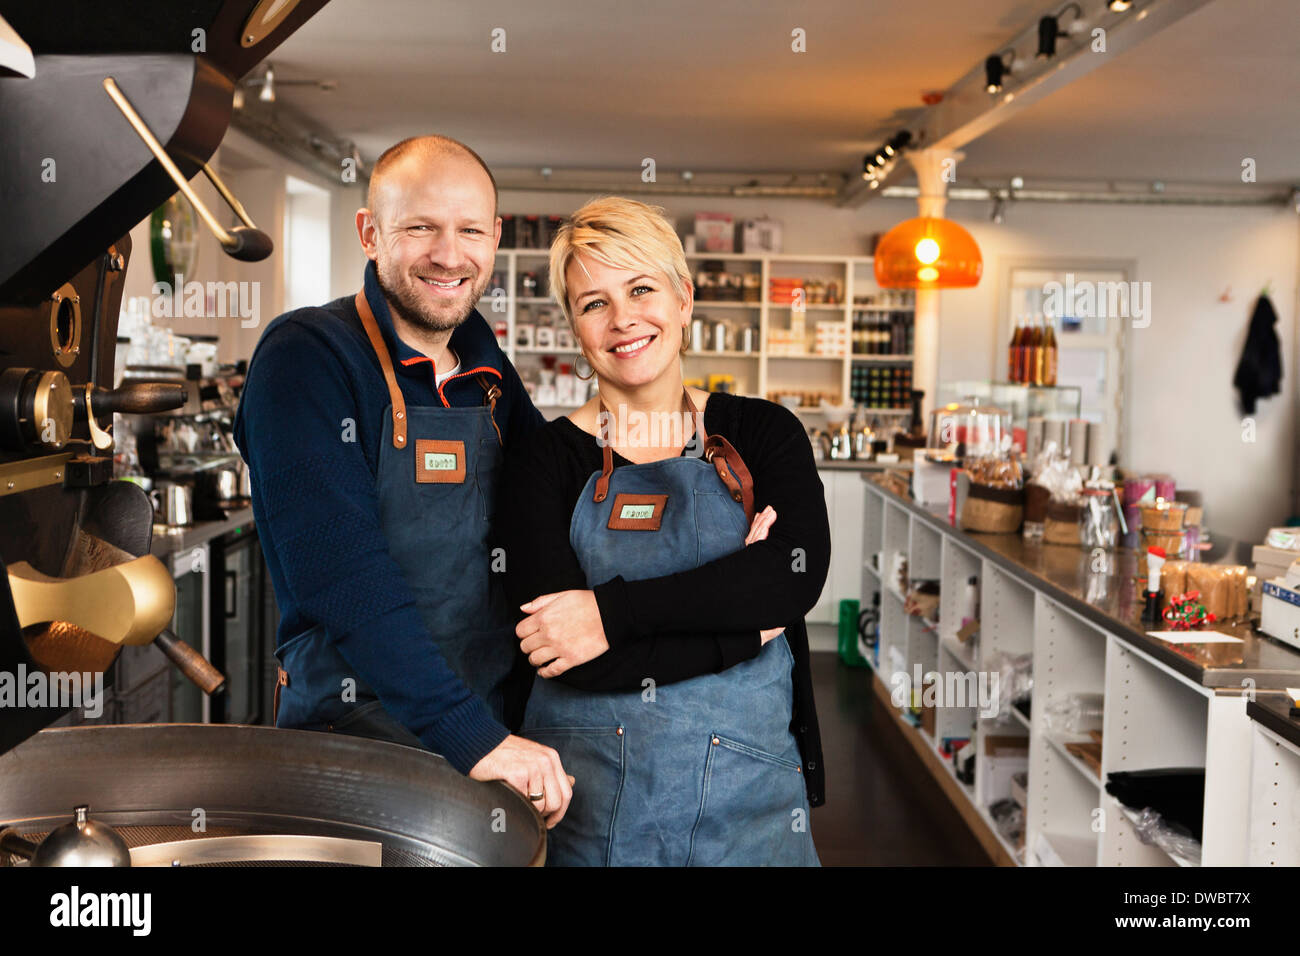 Mature couple in coffee shop kitchen - Stock Image